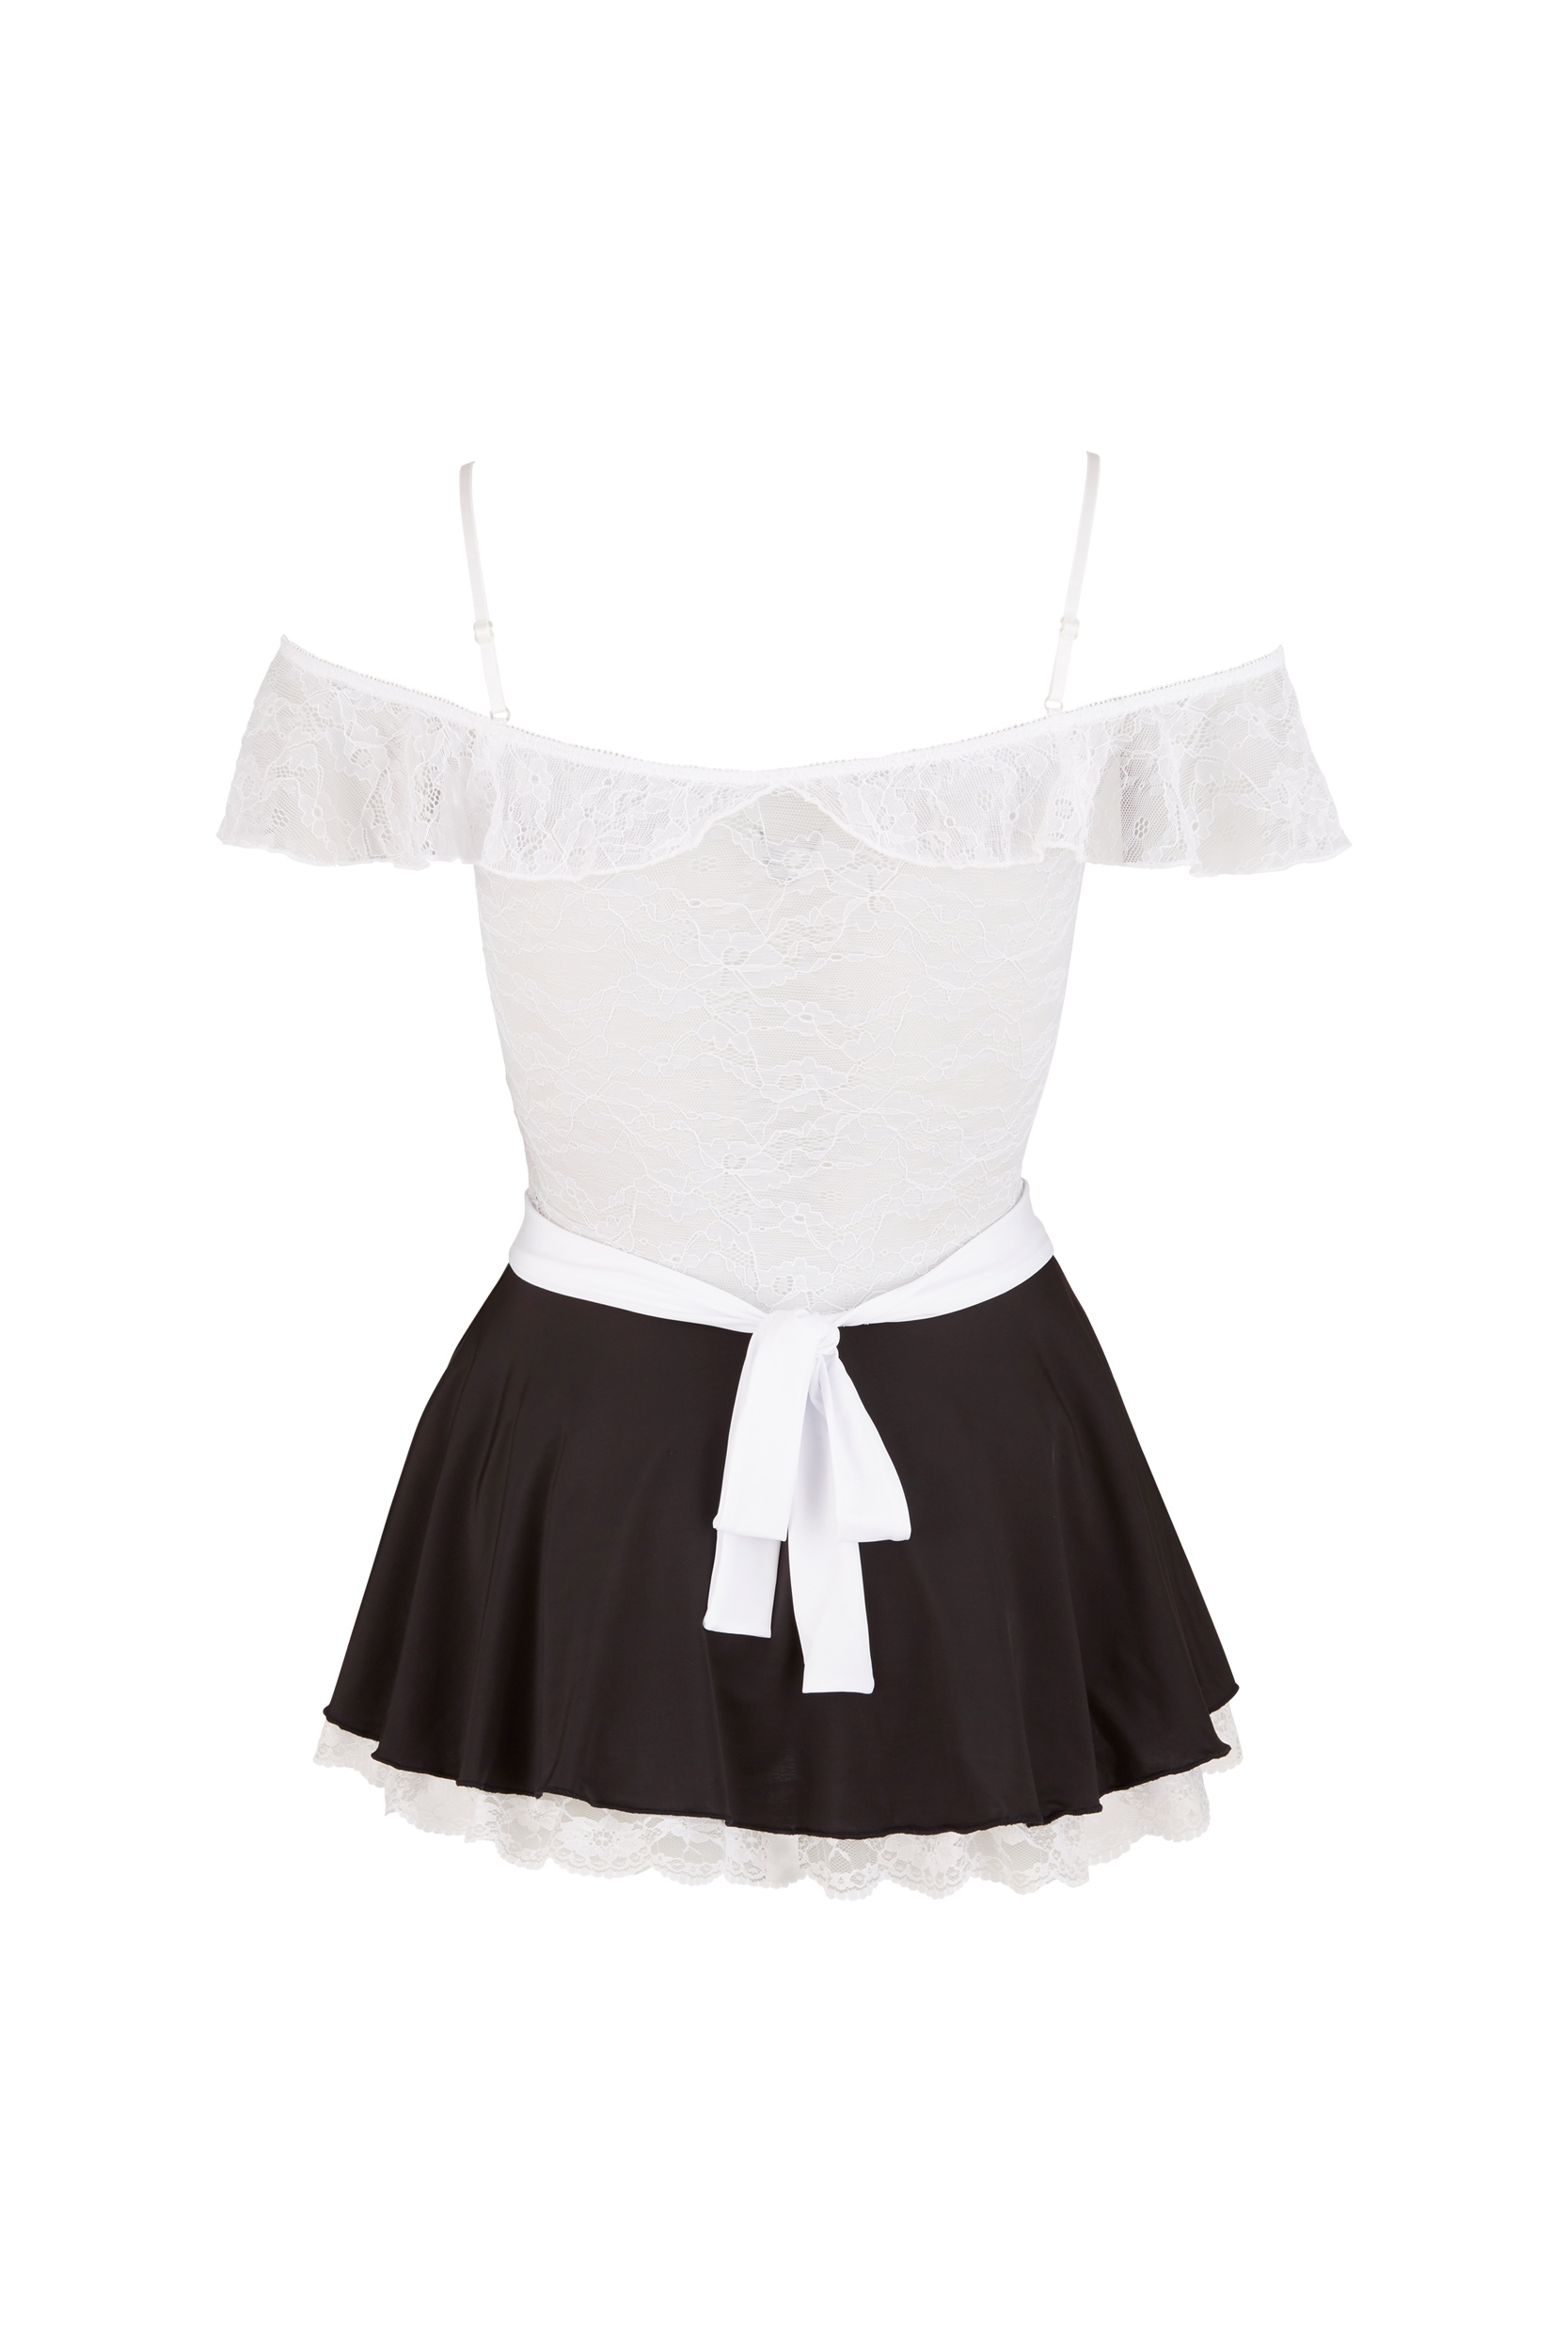 Maid's Dress With Lace Top